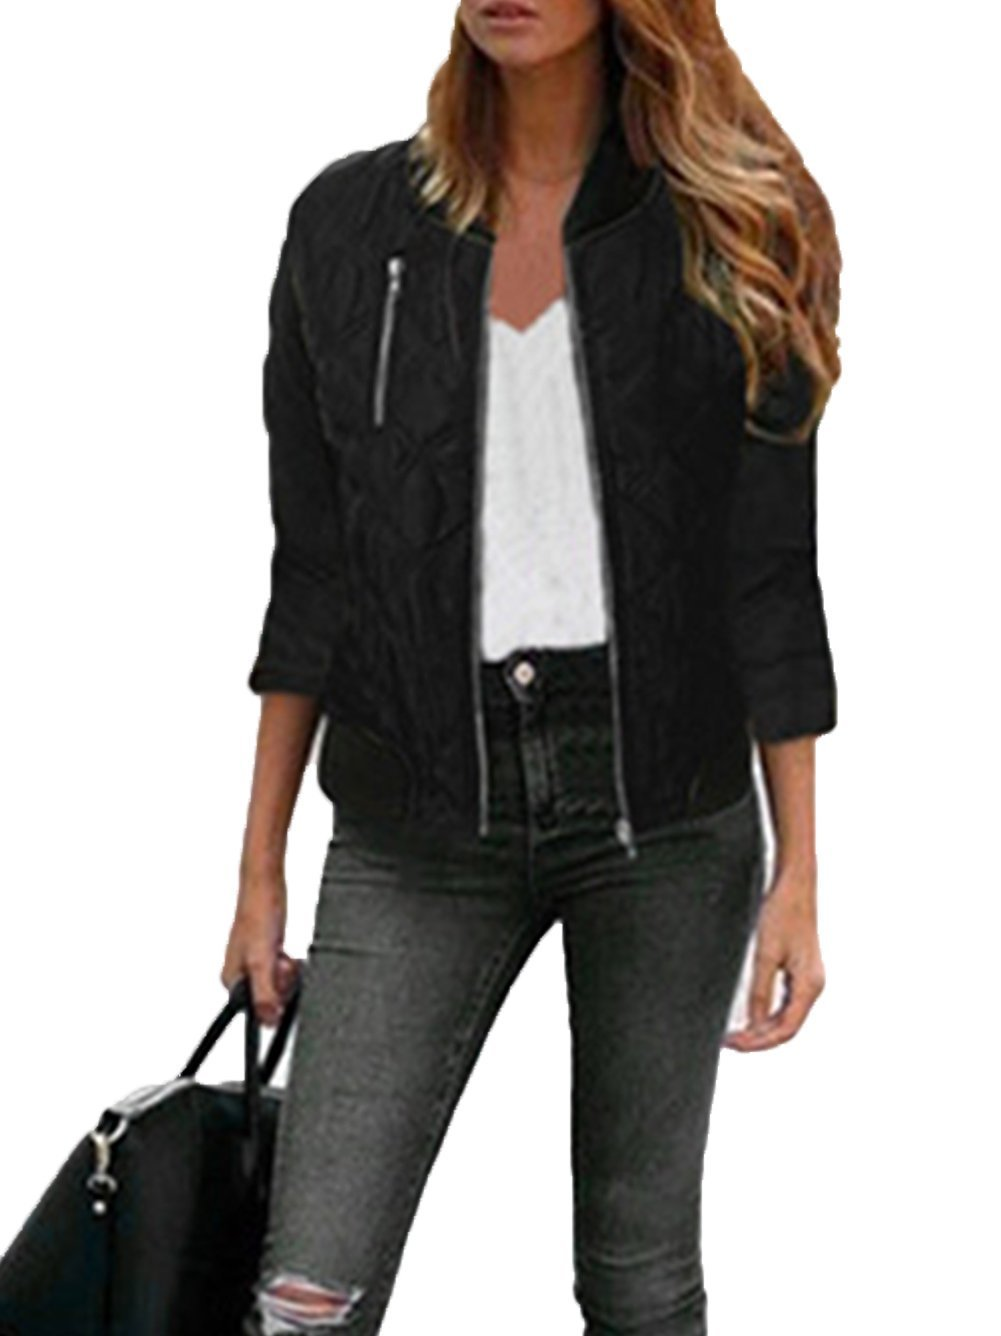 iChunhua Womens Casual Short Bomber Jacket Quilted Lightweight Zip Jacket M Black